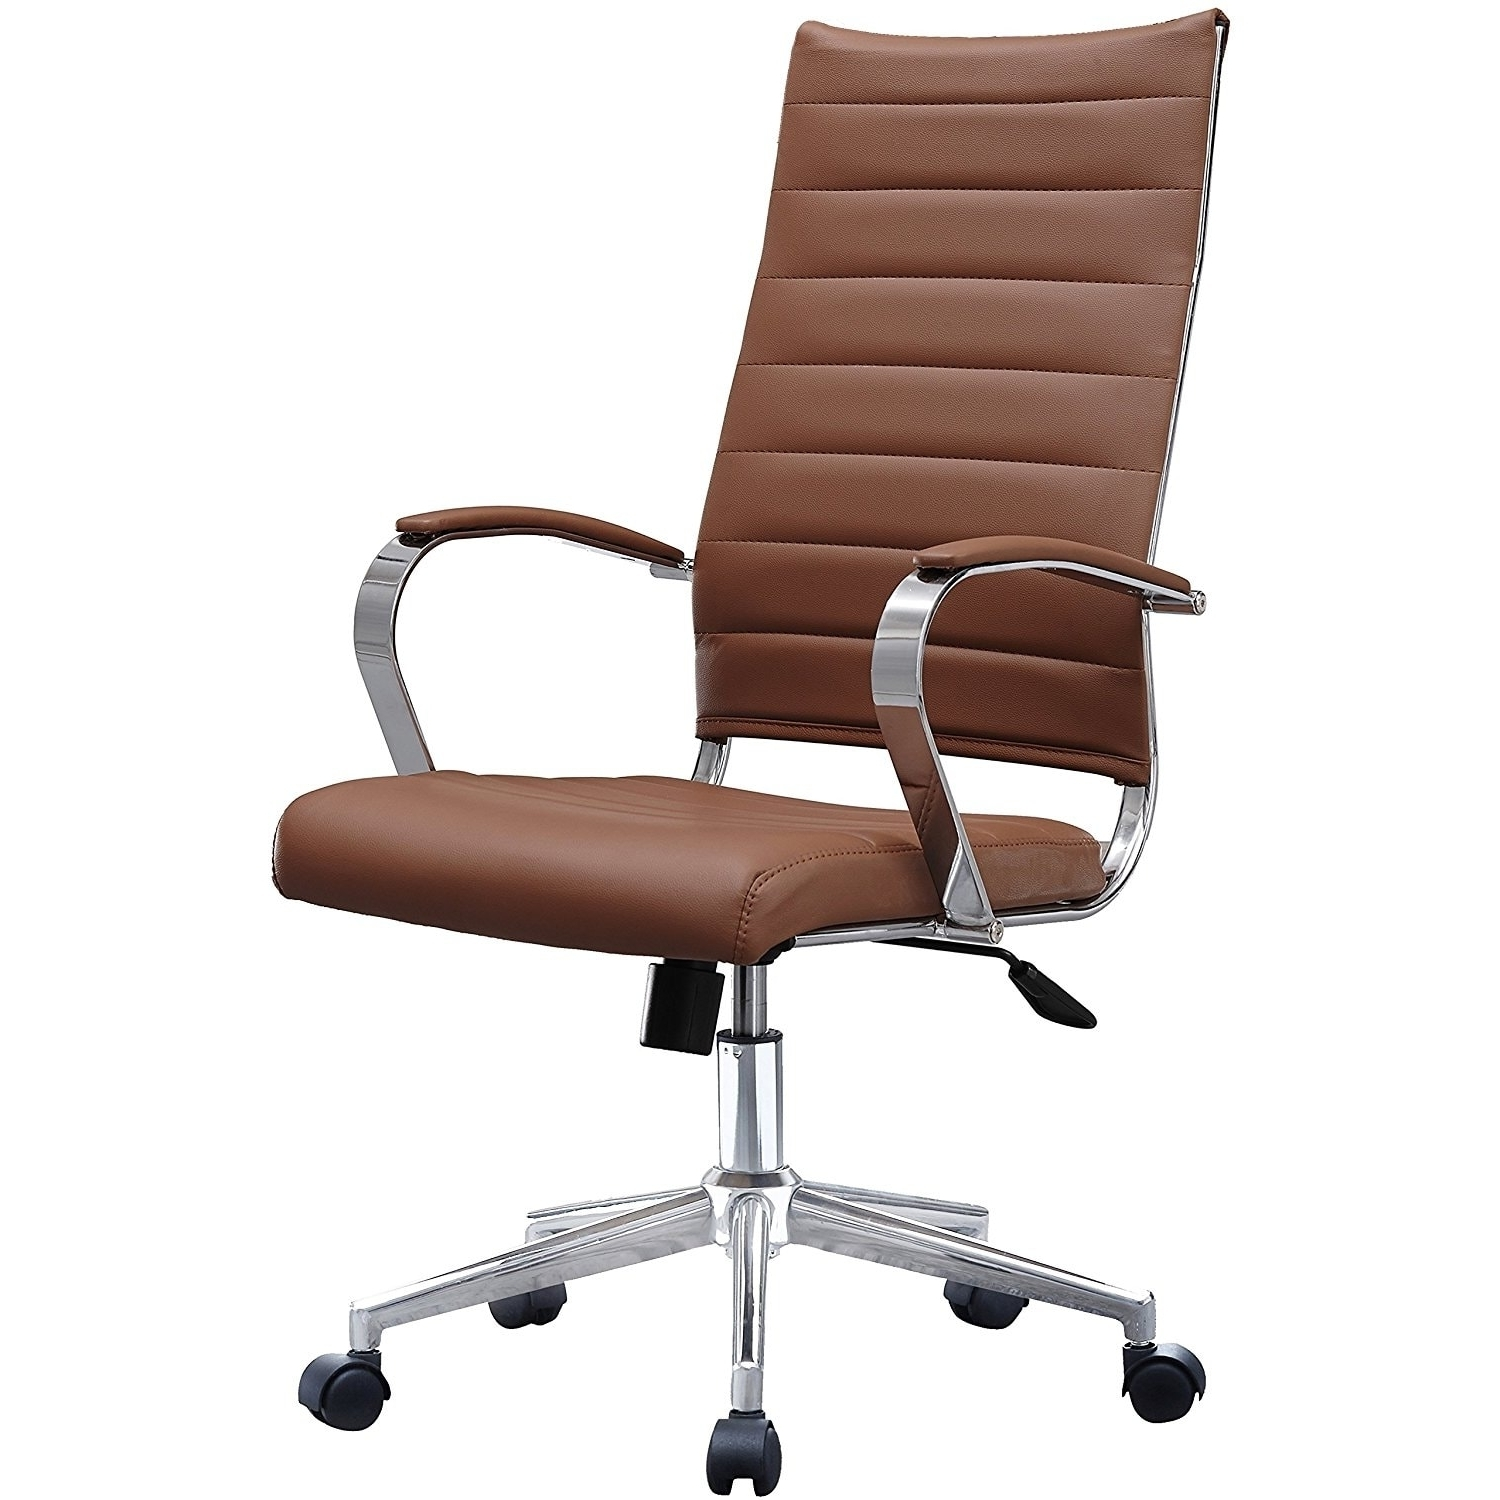 Widely Used Tan Brown Mid Back Executive Office Chairs Intended For 2Xhome Modern Brown High Back Office Chair Ribbed Pu Leather (View 9 of 20)